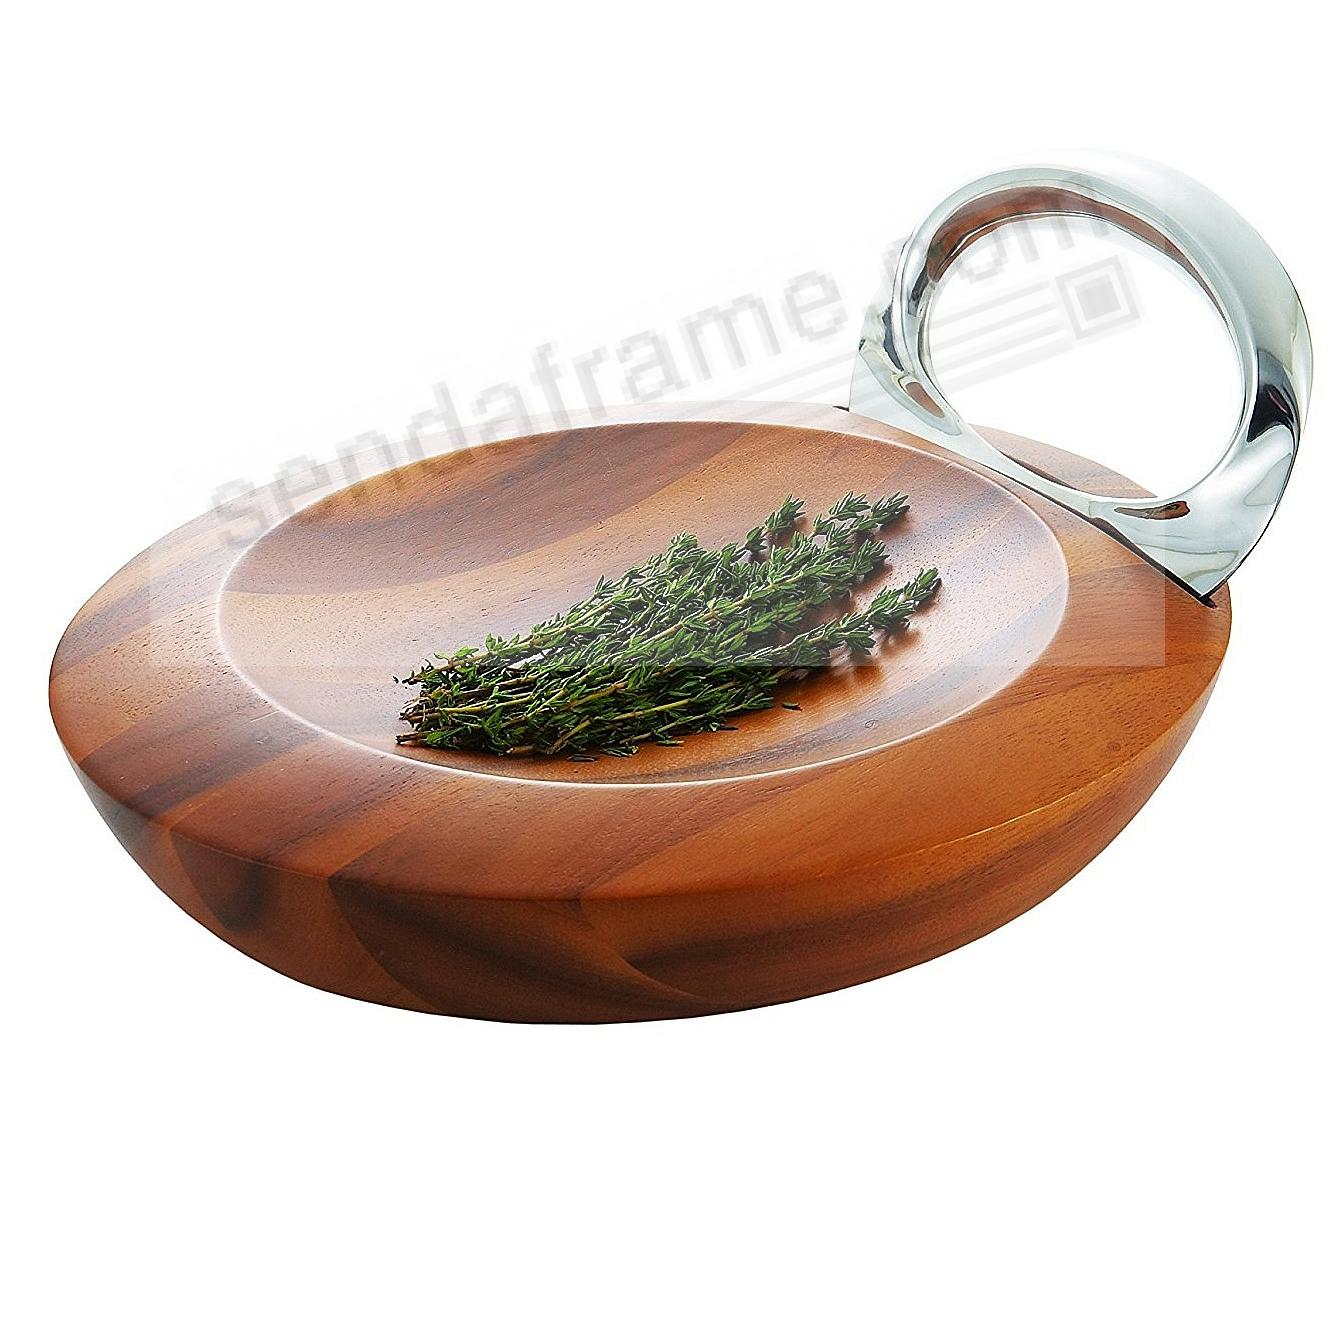 The Original HARMONY MEZZALUNA HERB CHOPPER crafted by Nambe®